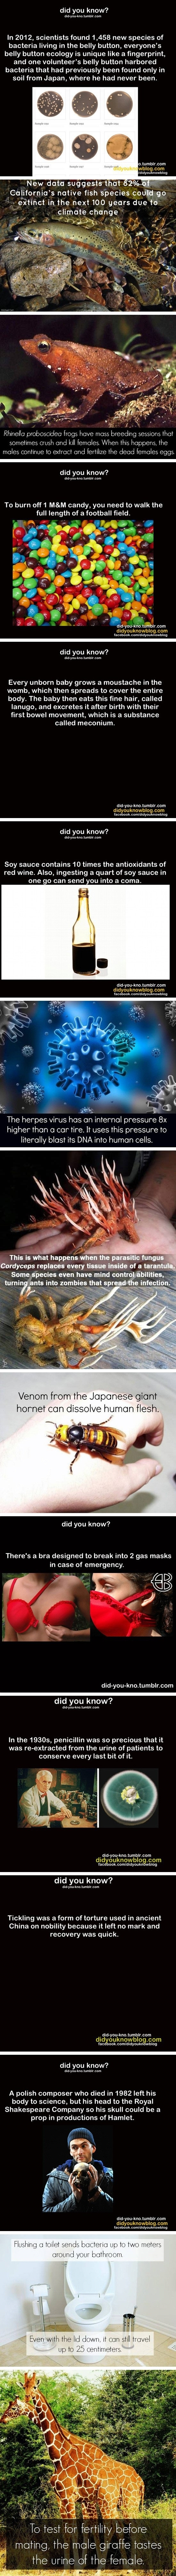 Facts that will horrify you